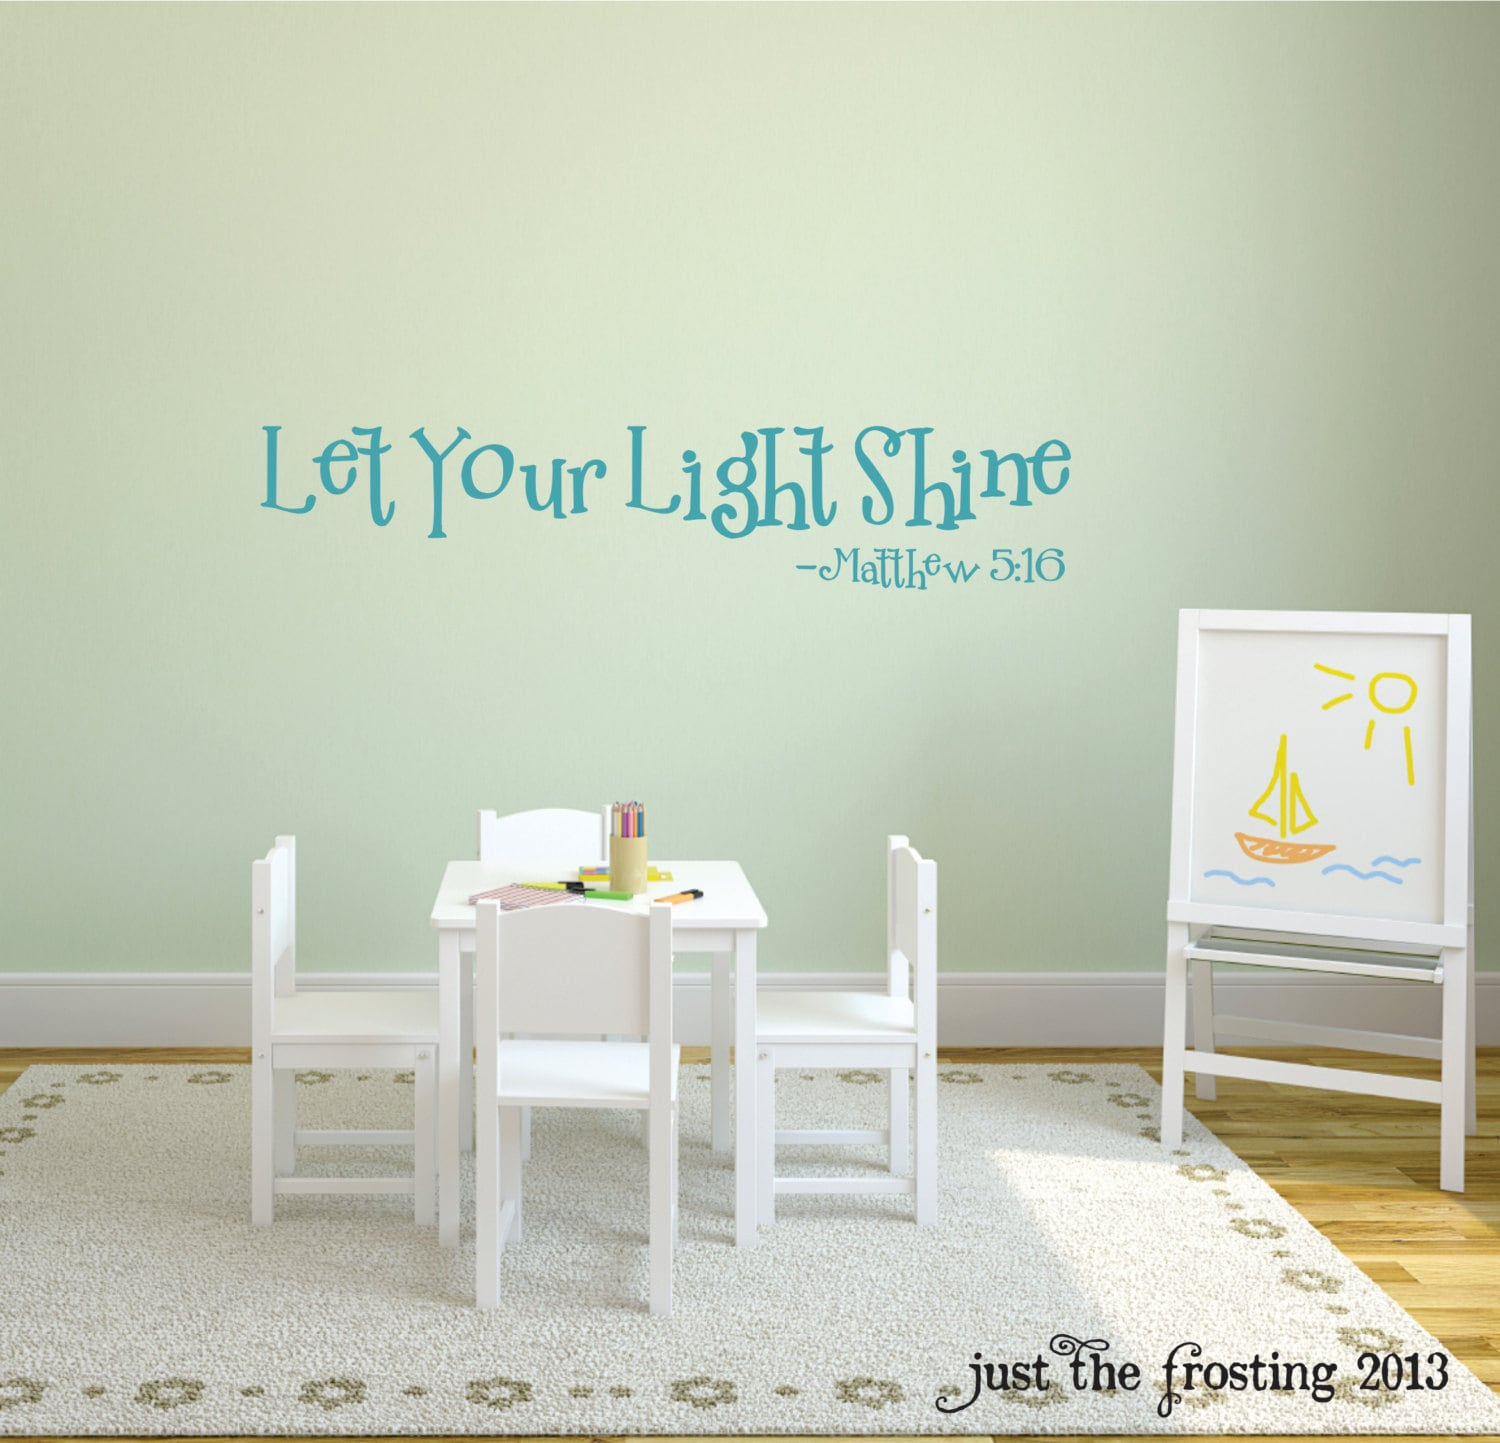 Let your light shine wall decal childrens or playroom decor zoom amipublicfo Image collections